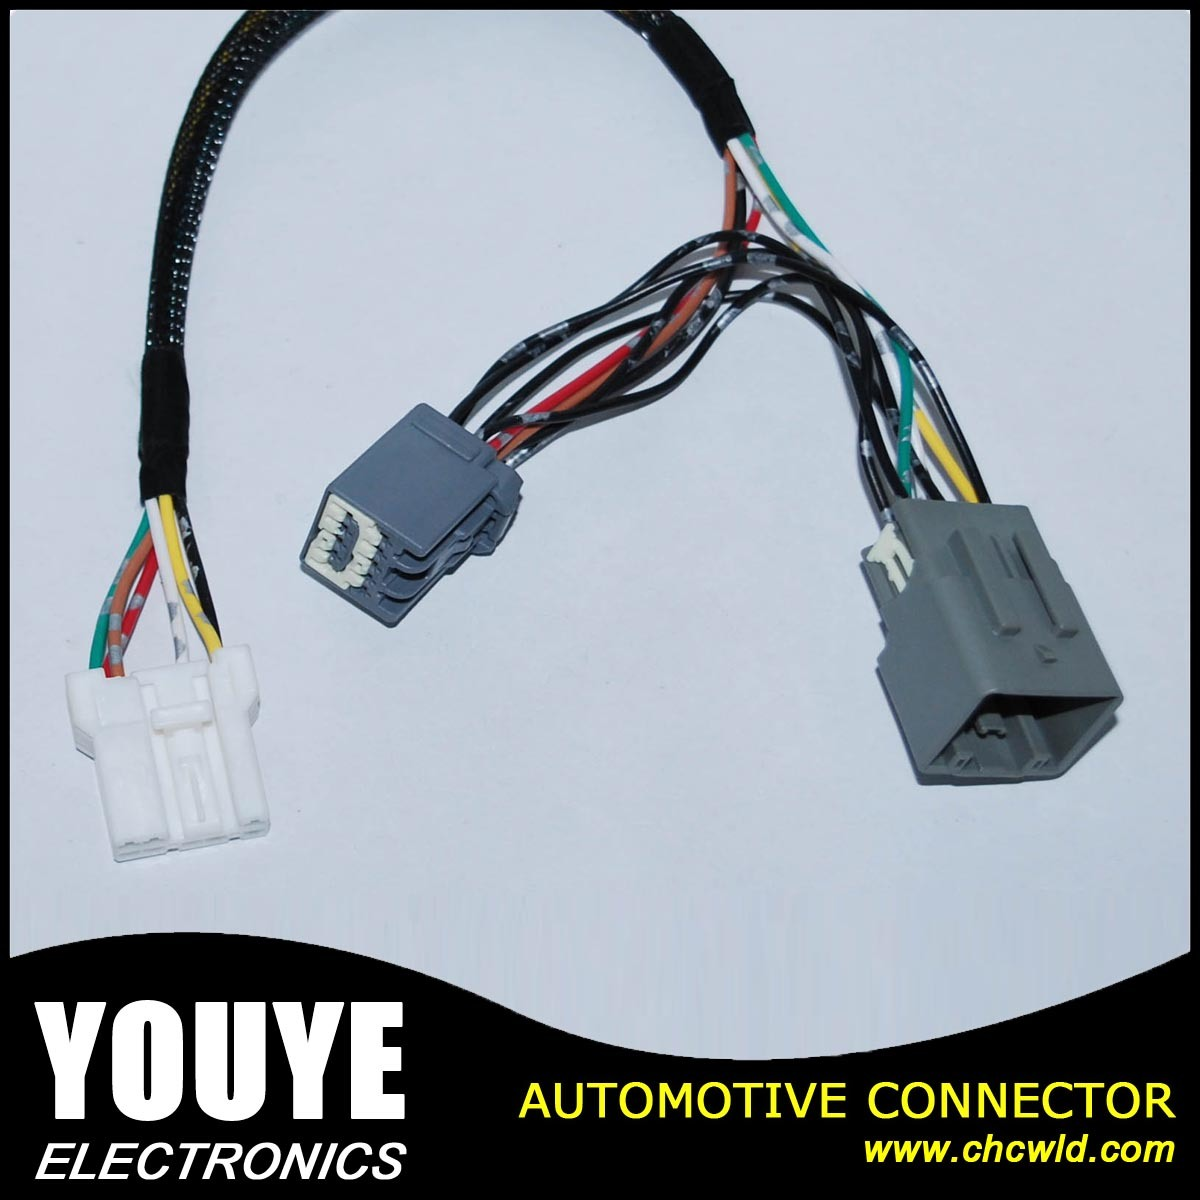 Automotive Electrical Wiring Components Suppliers Wire Harness Supplier China Electronic Manufacturer Burglar Pin 1200x1200